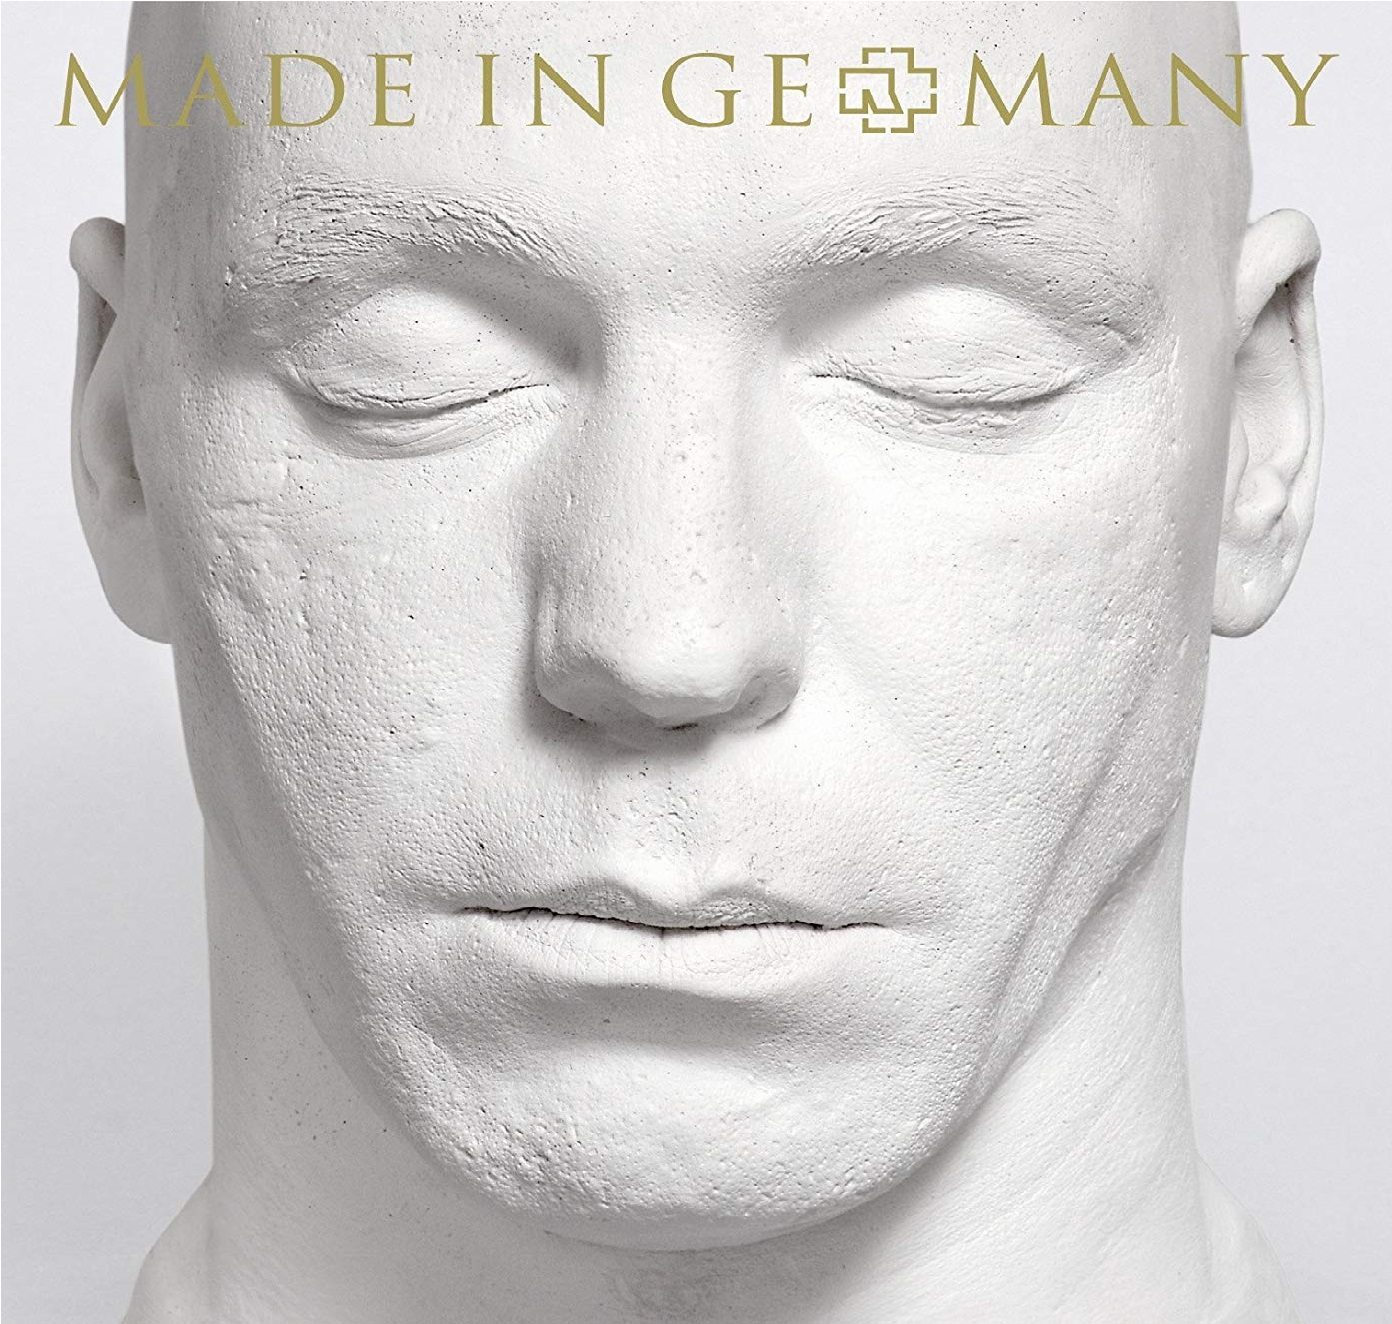 RAMMSTEIN - Made in Germany (1995 - 2011) cover